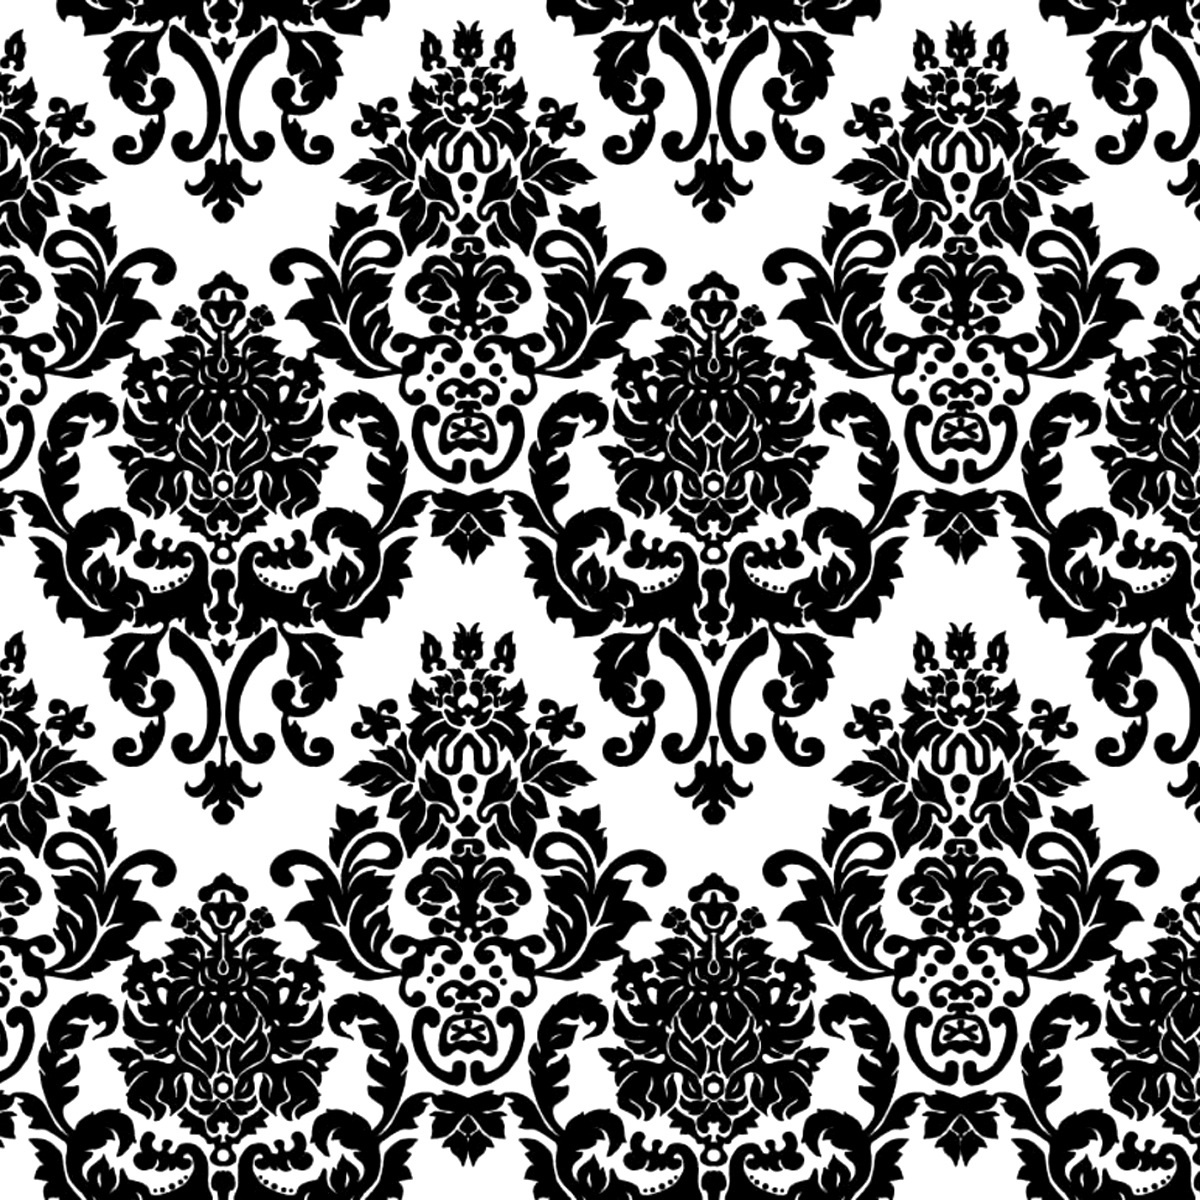 Printable Black And White Wallpaper   Chart And Printable World - Free Printable Wallpaper Patterns